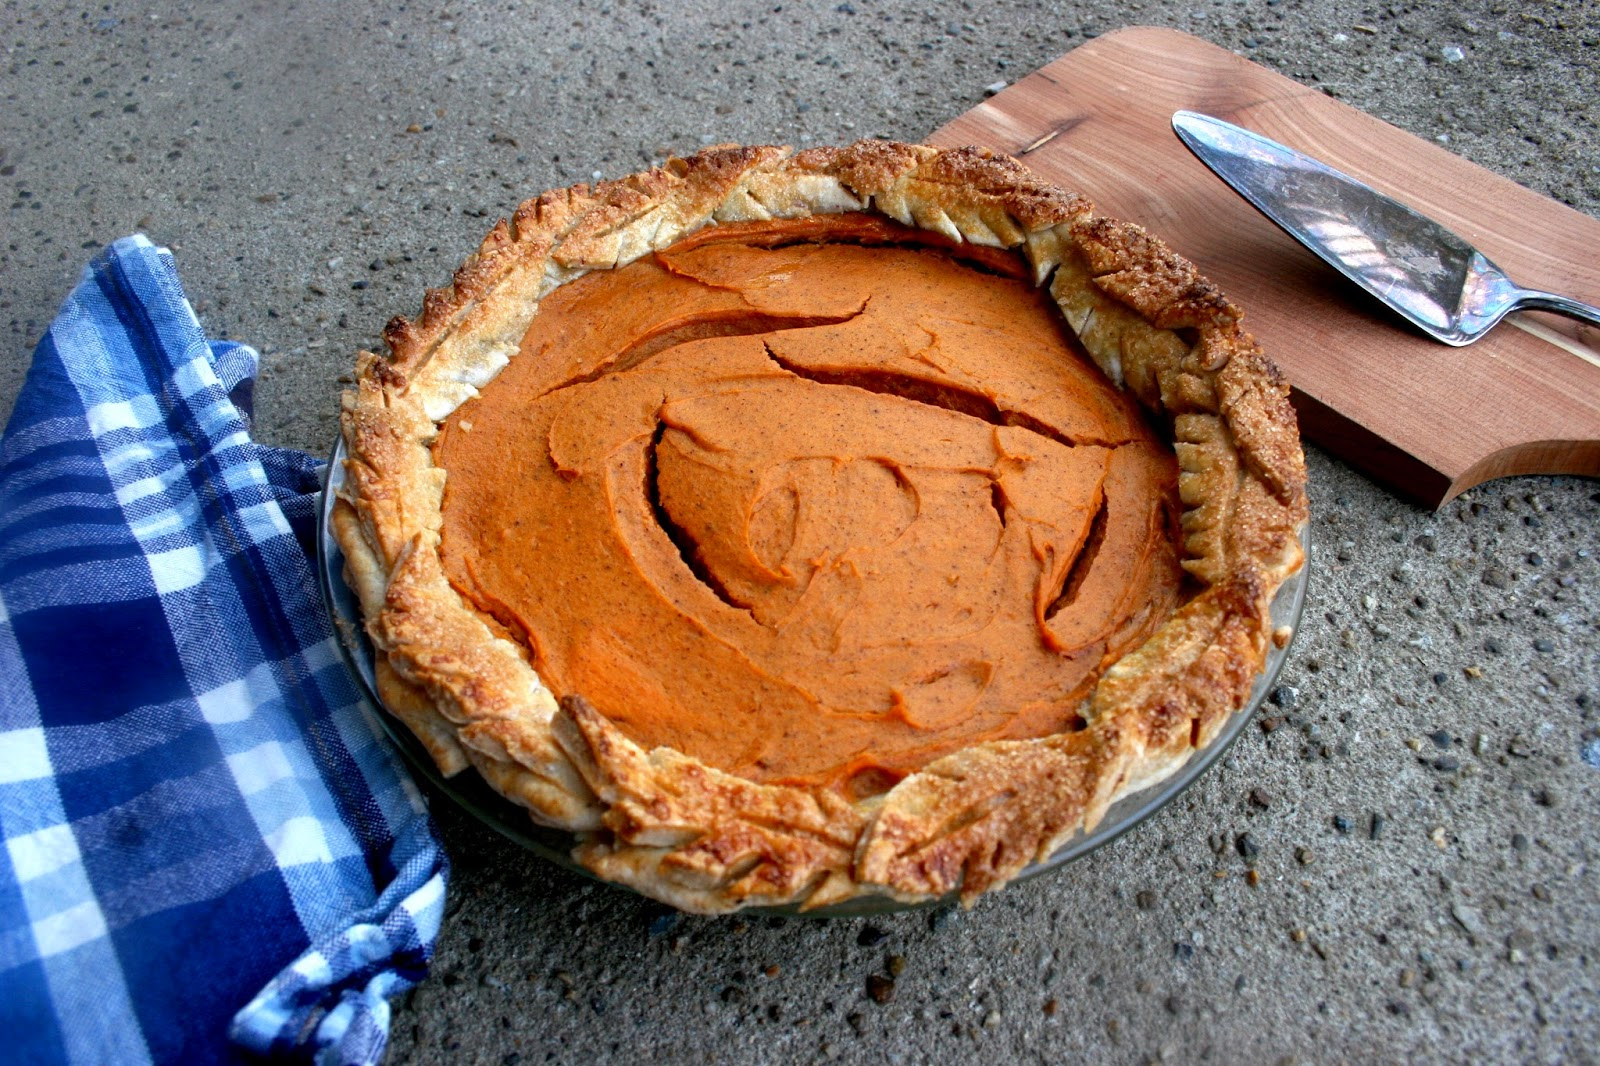 Smoke Signals Baking's Sweet Potato Pie with Cornmeal Crust